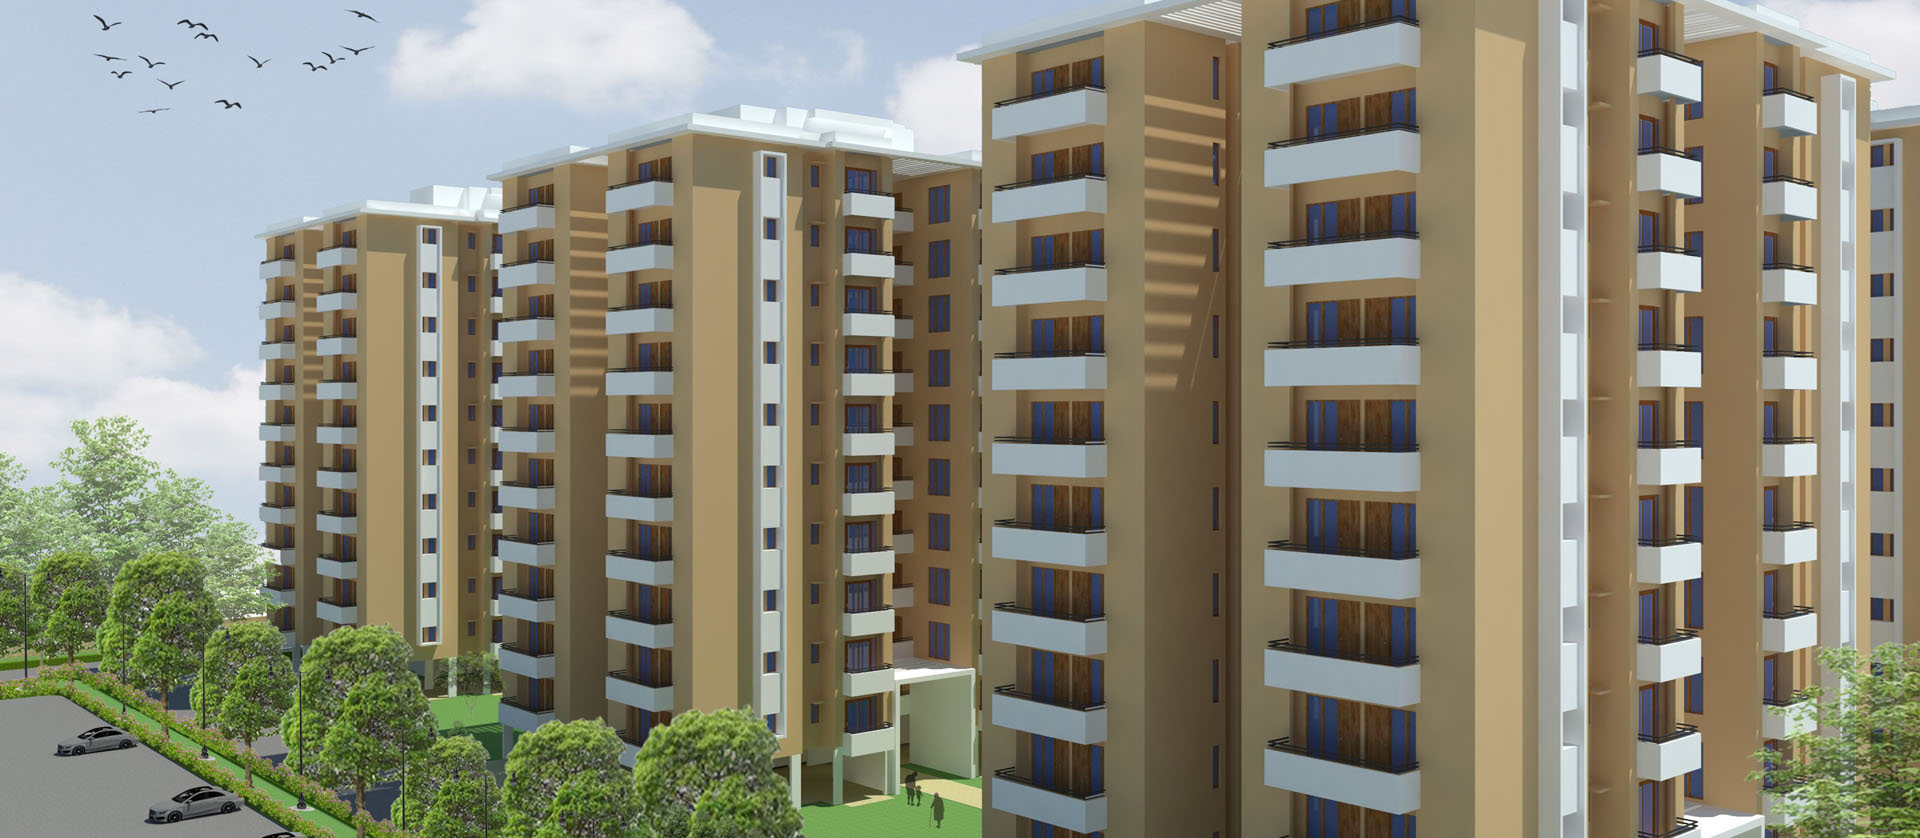 Multi-Storey Housing: Kirandul Township, Chhattisgarh